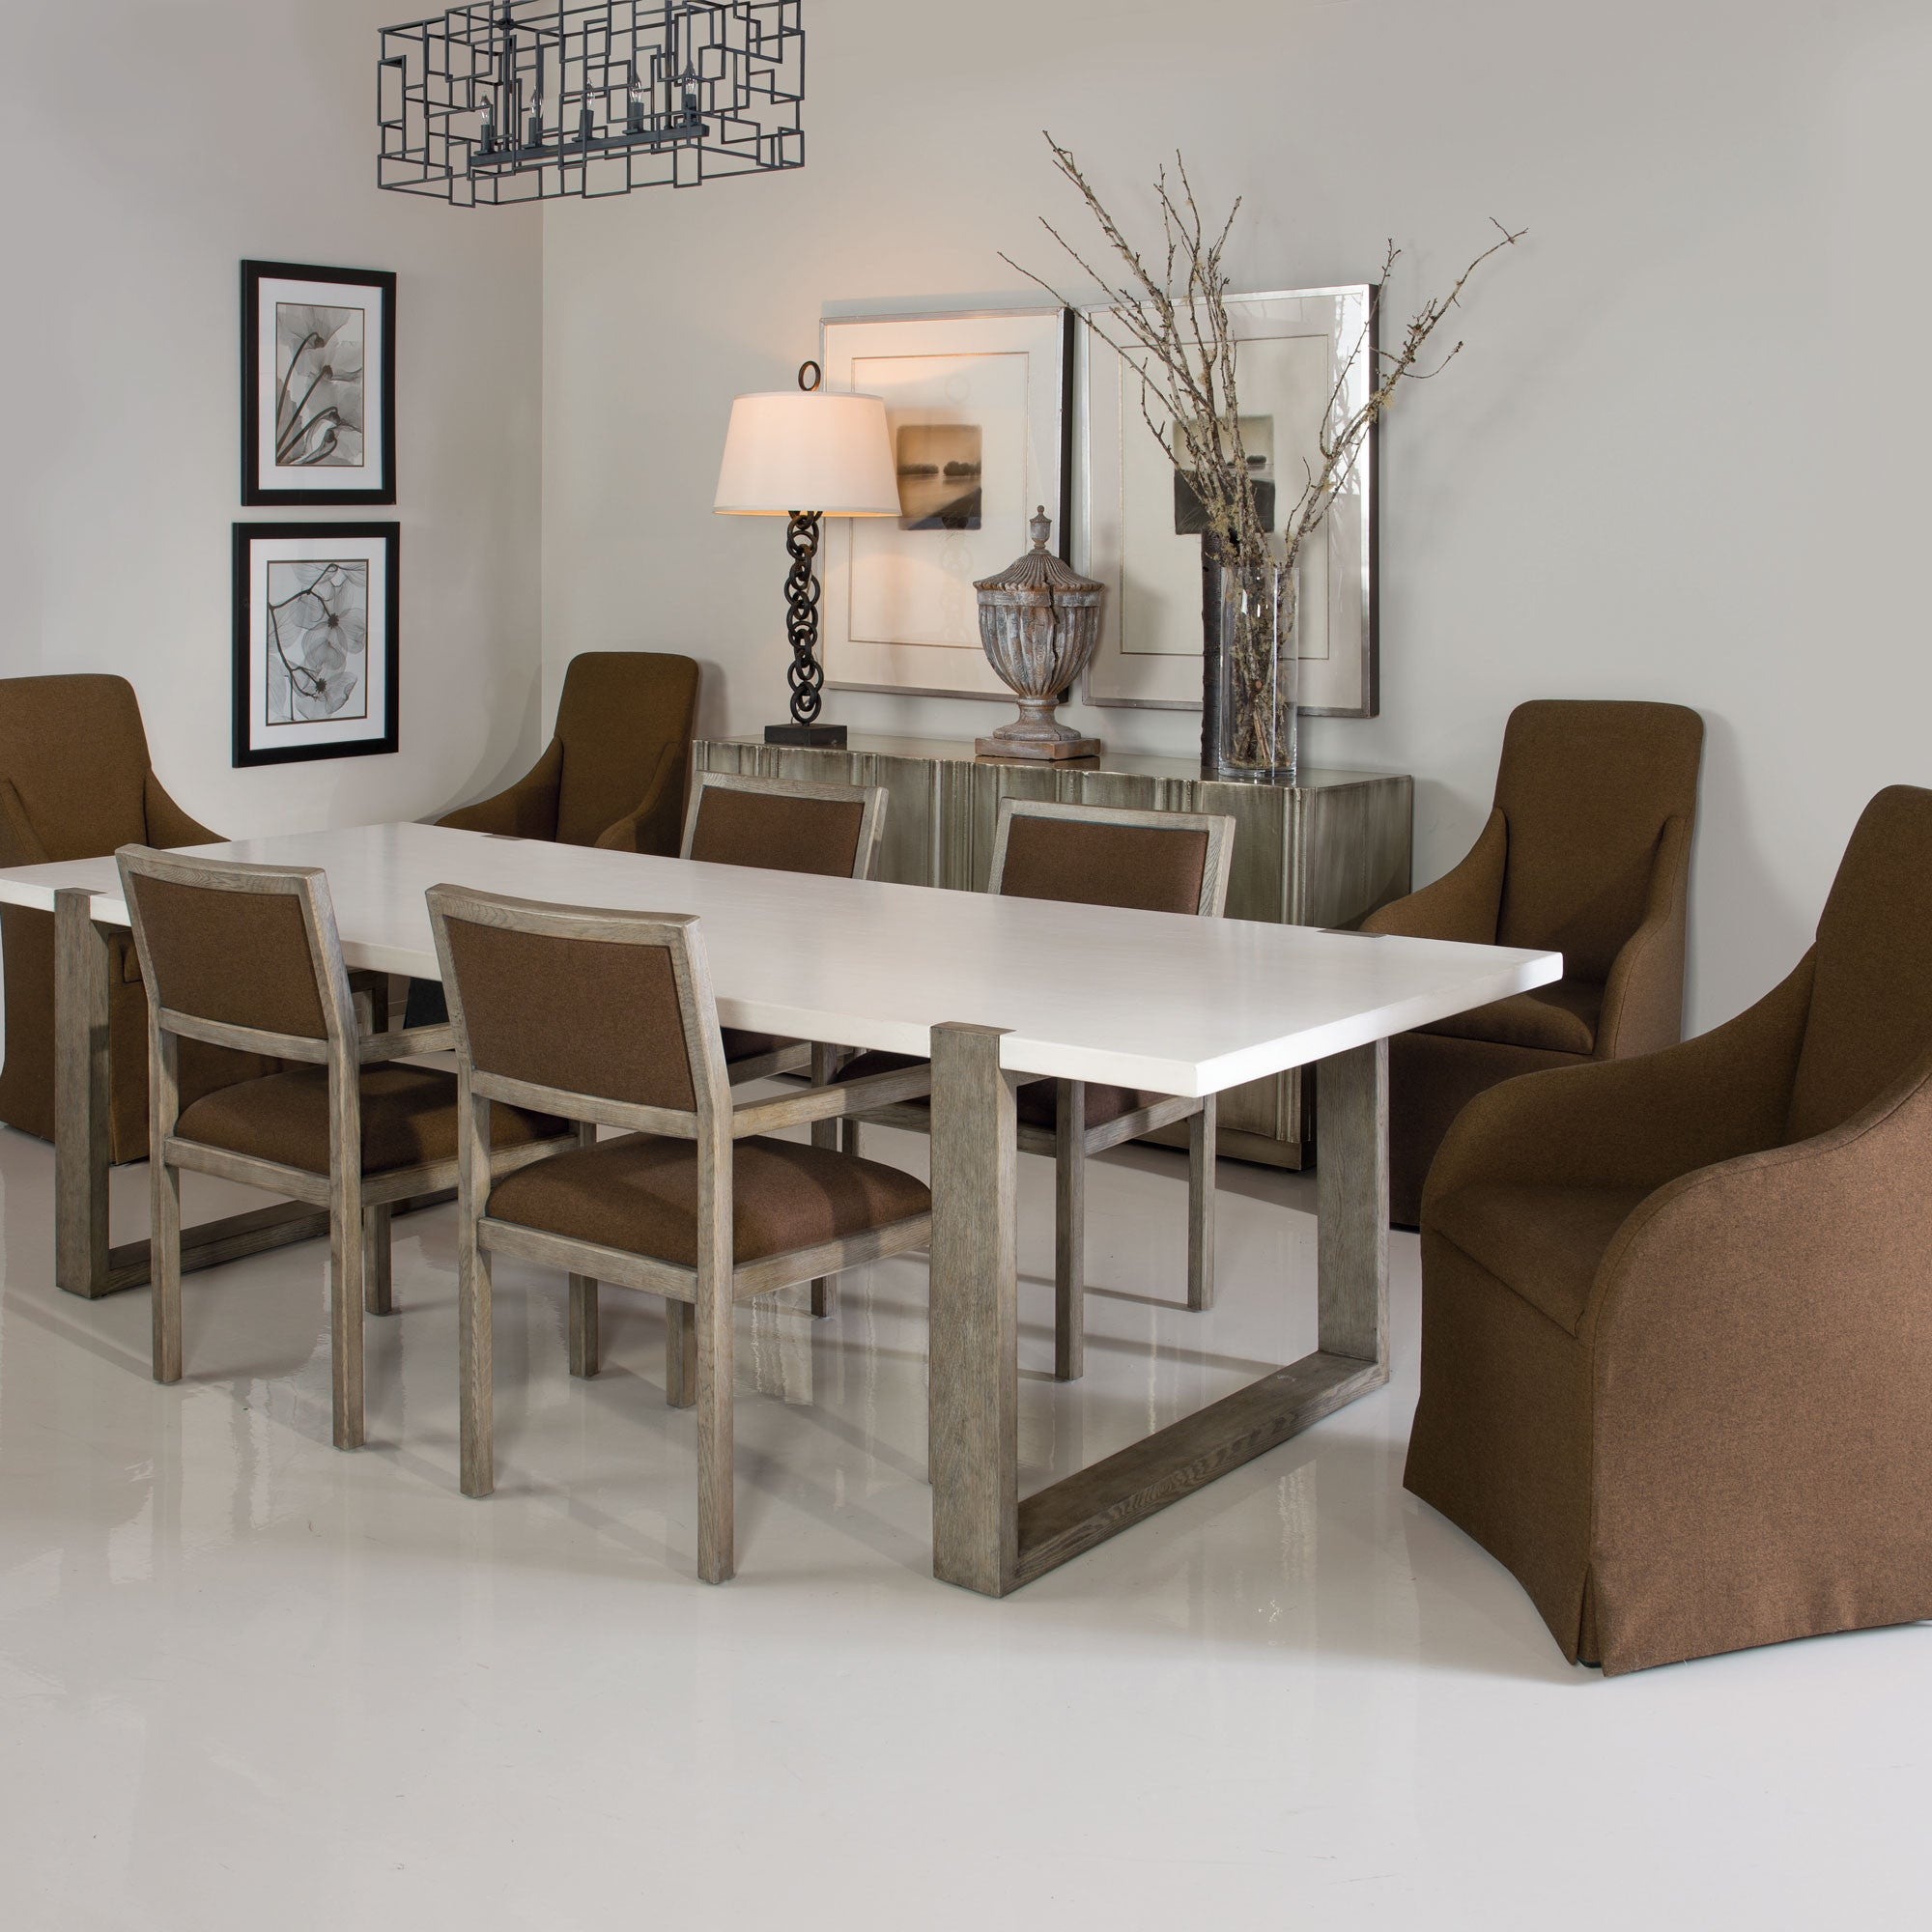 Hadleigh Dining Table